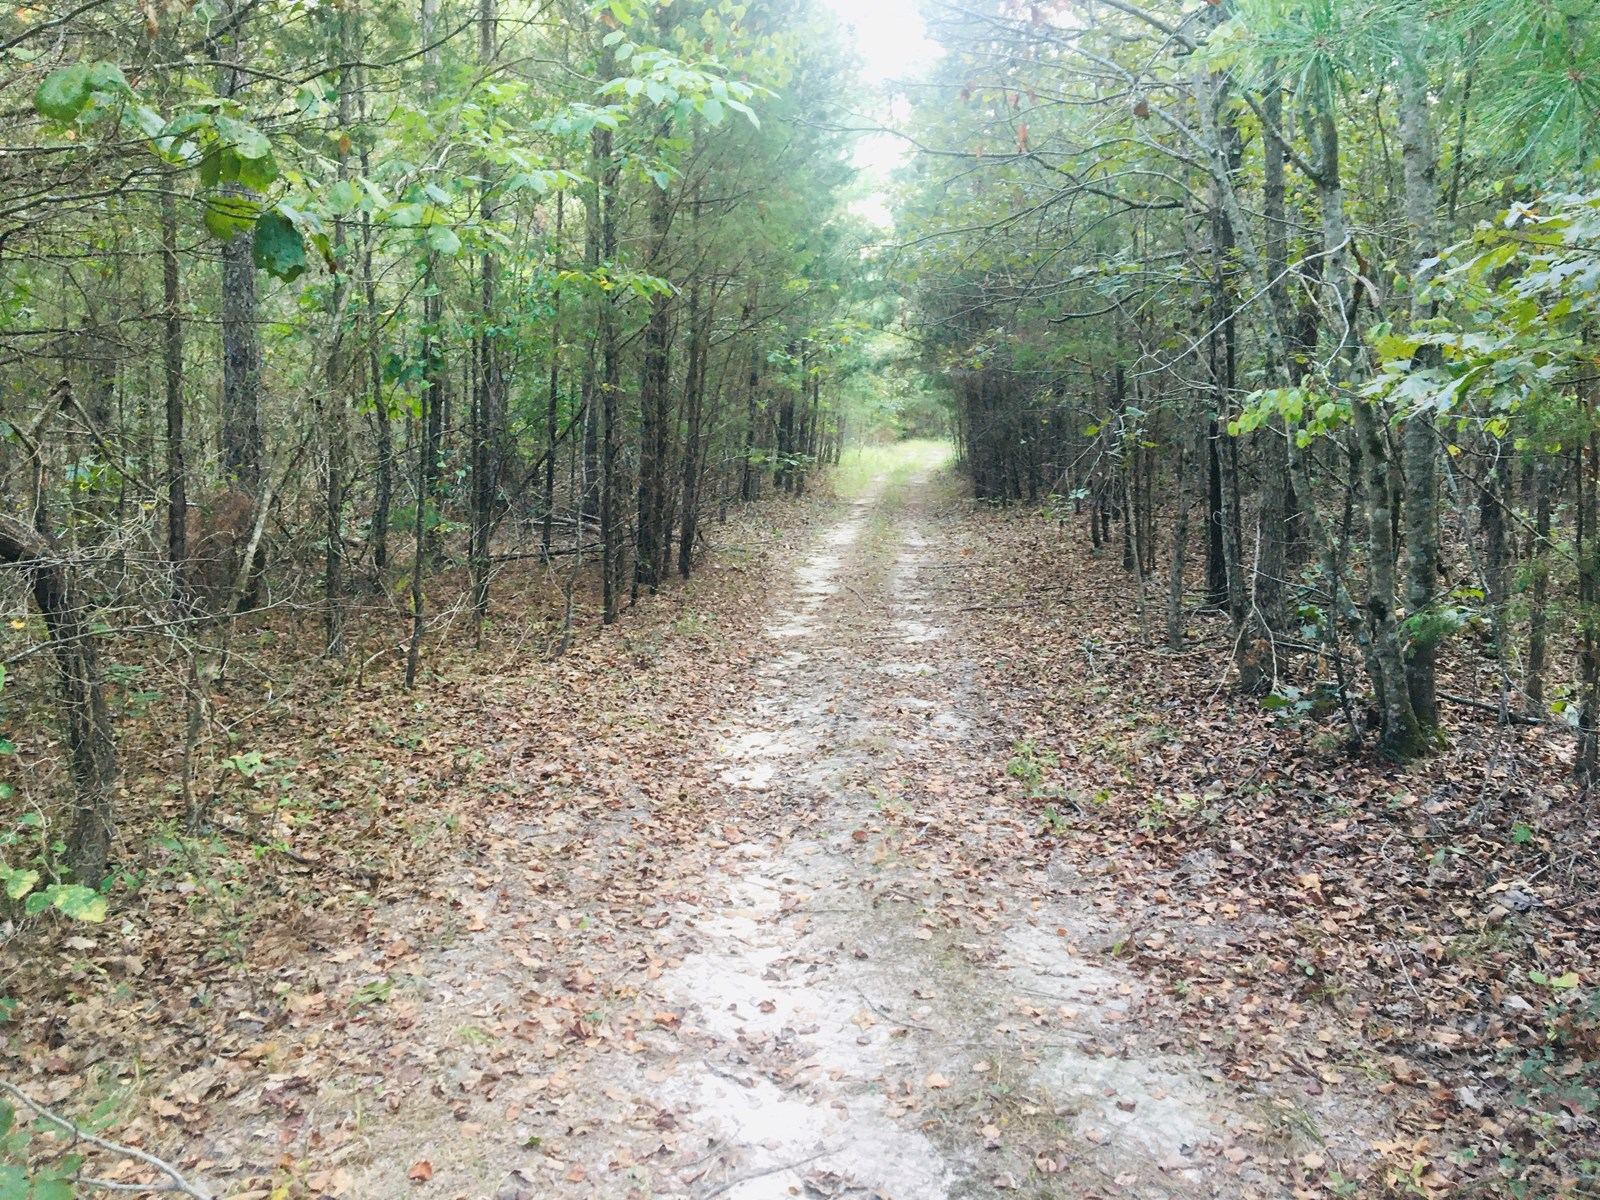 40 ACRES FOR SALE NEAR LAKE NORFORK WITH POWER!